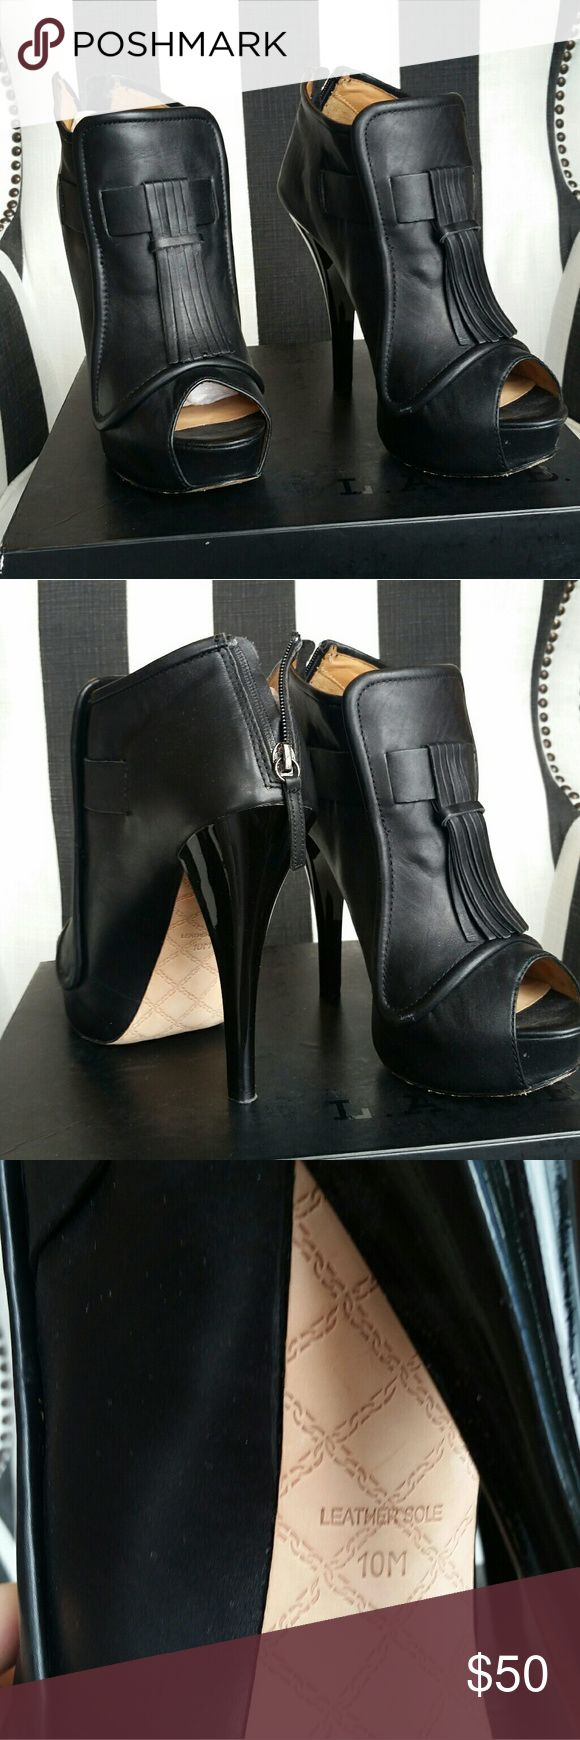 LAMB Gwen Stefani tassel black booties Super chic black booties with menswear feel. Platform makes these super comfortable!! Some wear on soles. Comes with box and extra heel taps. L.A.M.B. Shoes Ankle Boots & Booties